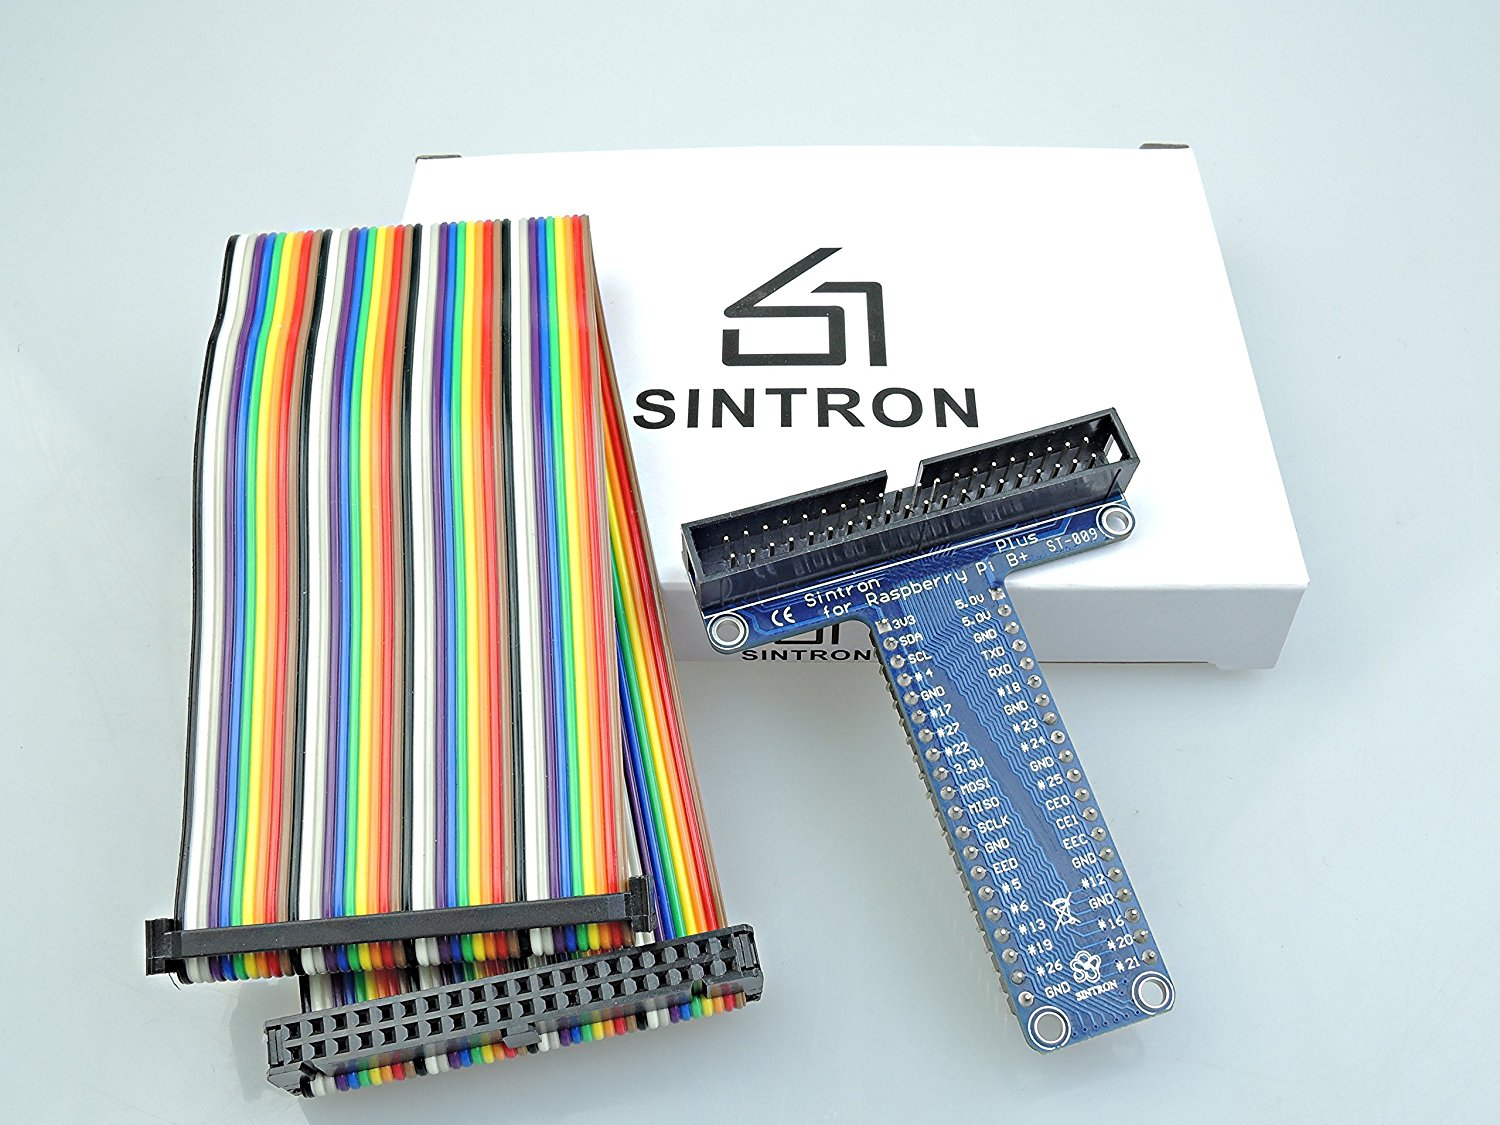 Sintron 40 Pin Gpio Extension Board With Rainbow Color Ribbon Cable Schematic For